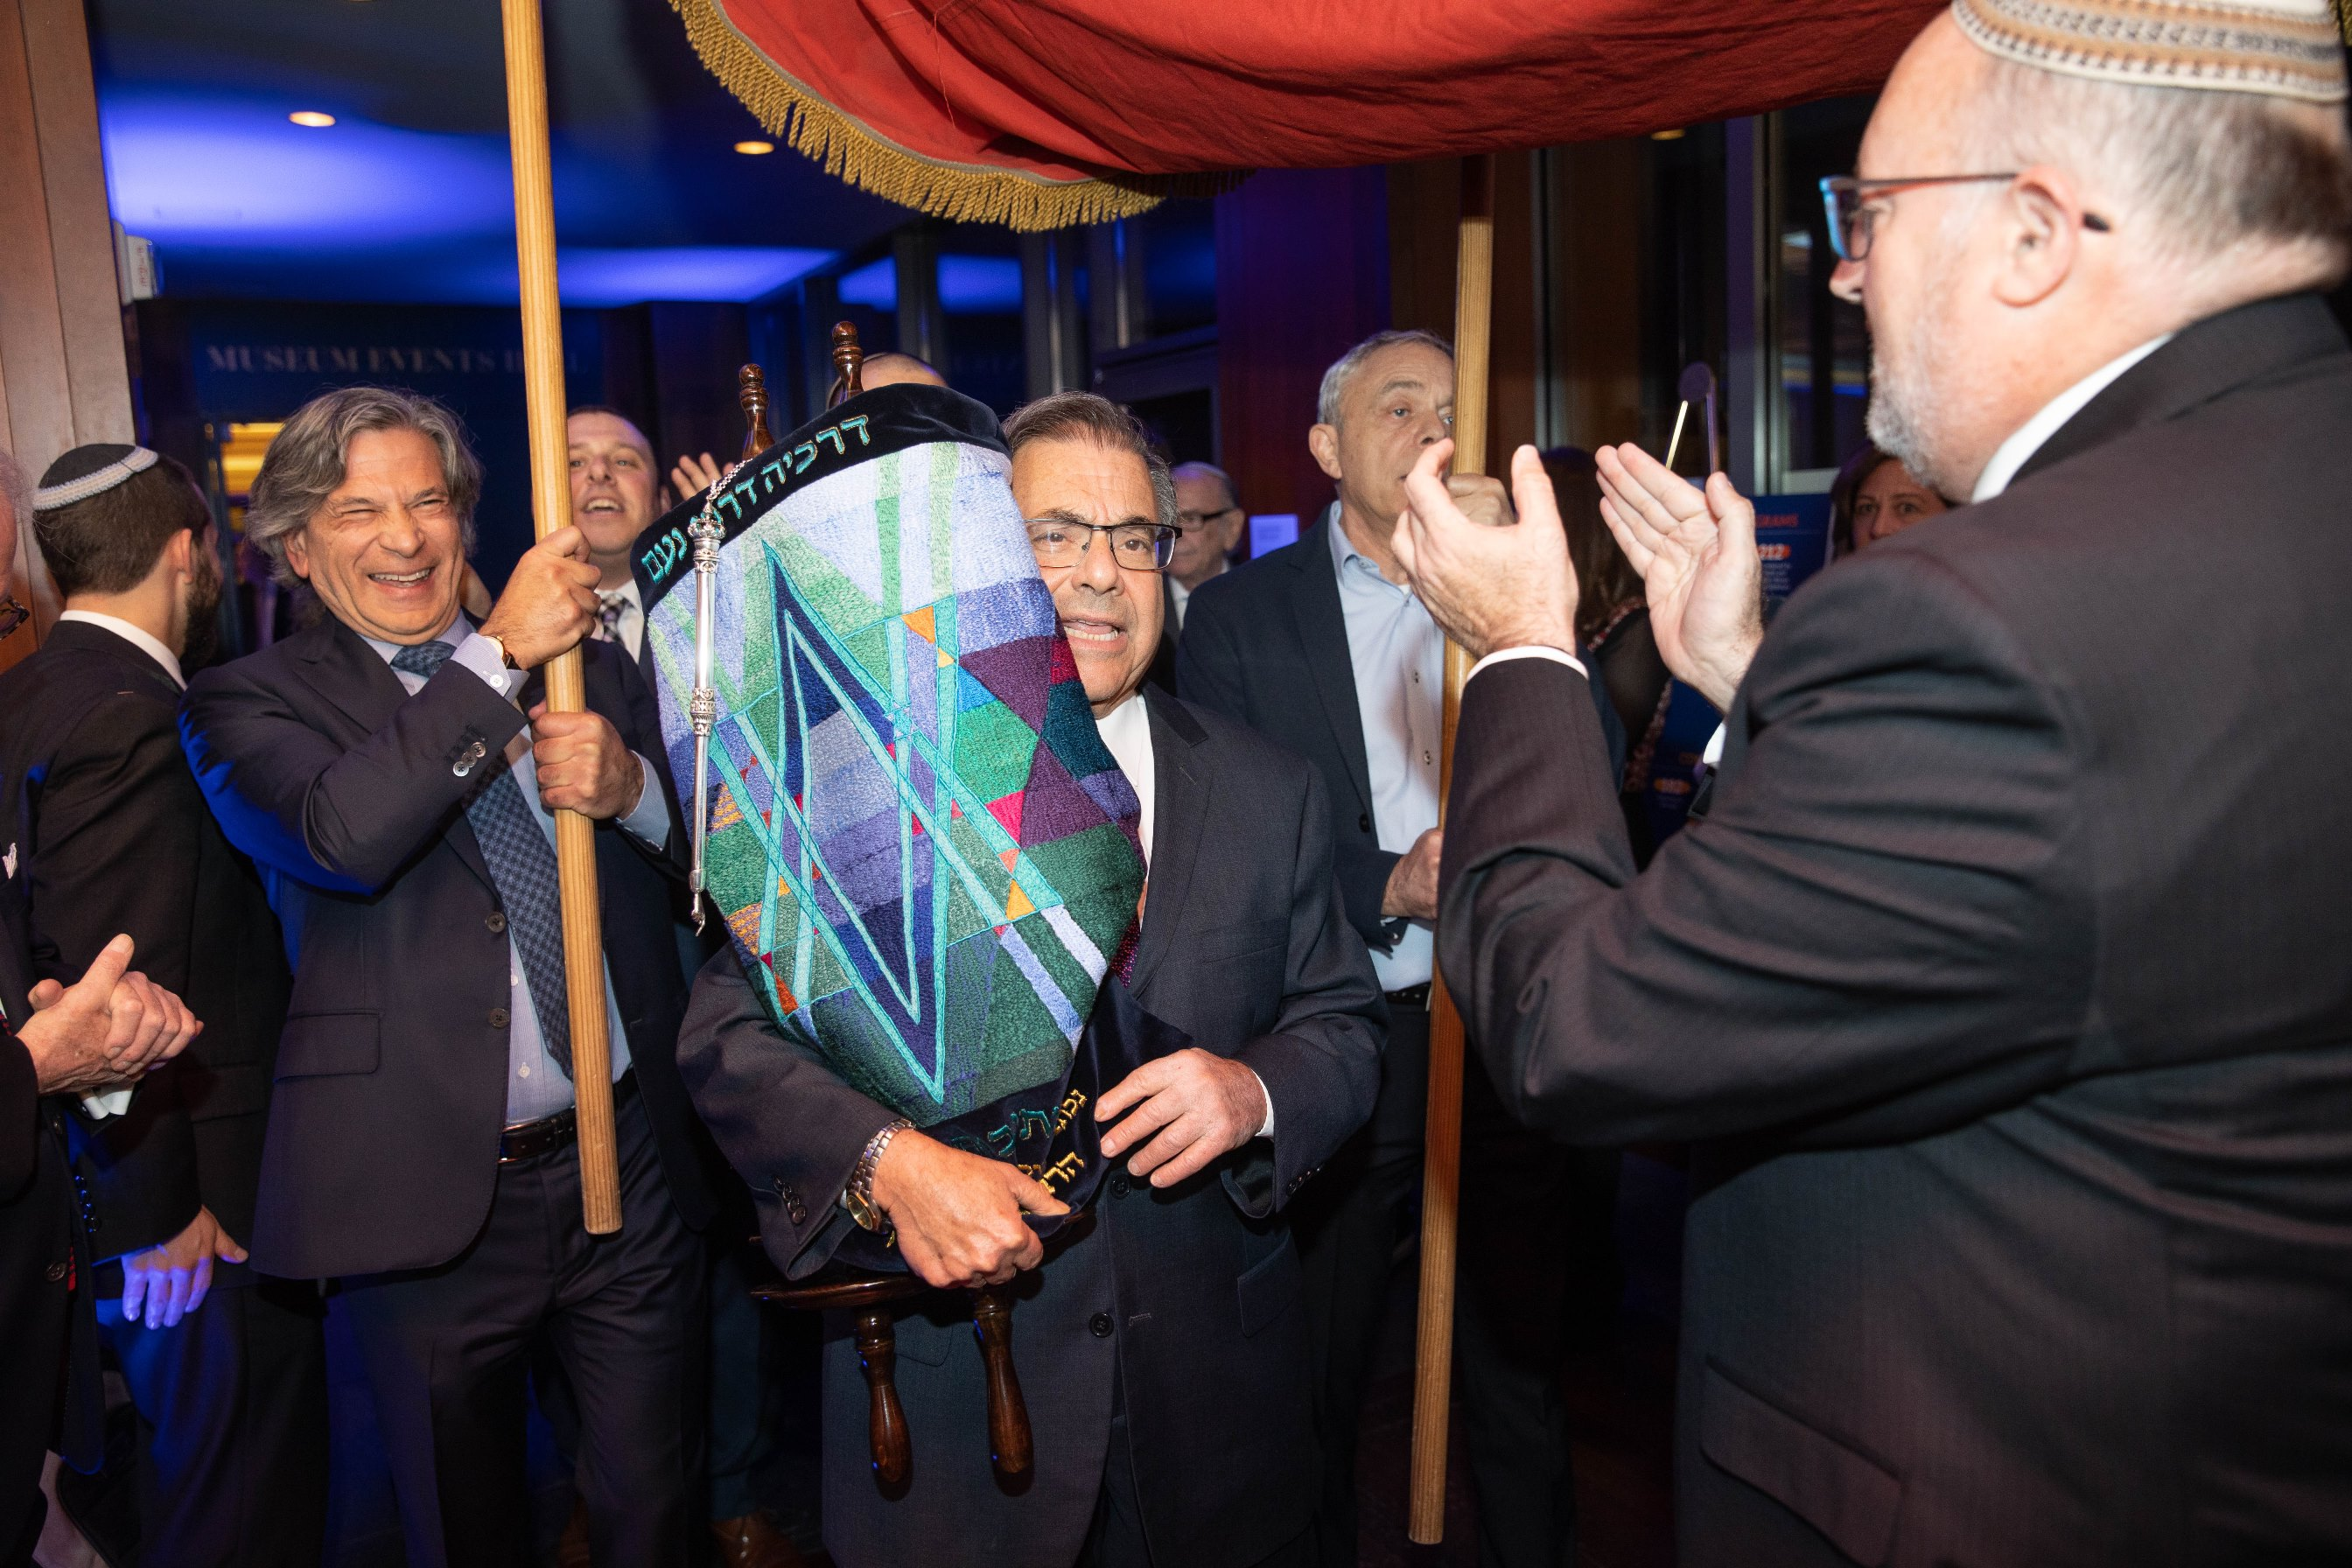 Rabbi Riskin with sefer torah